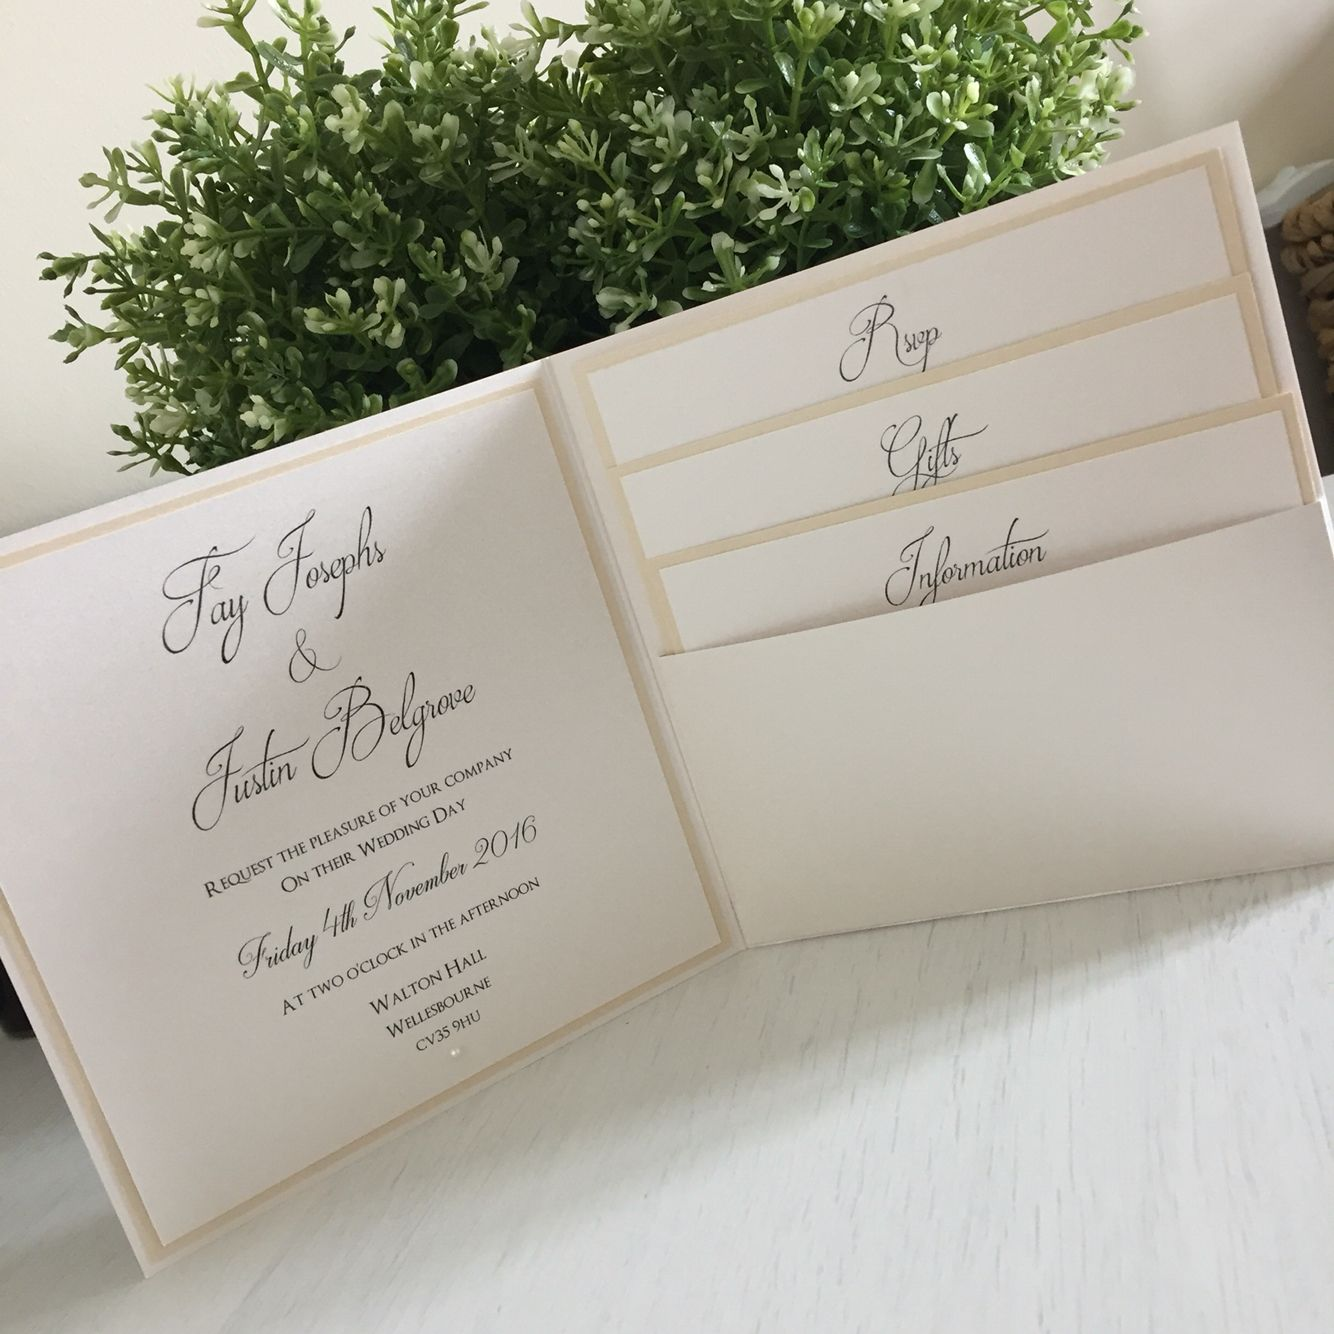 champagne blush wedding invitations%0A A glamorous chic pocket fold Wedding invitation  Colours  Oyster  Champagne  Gold